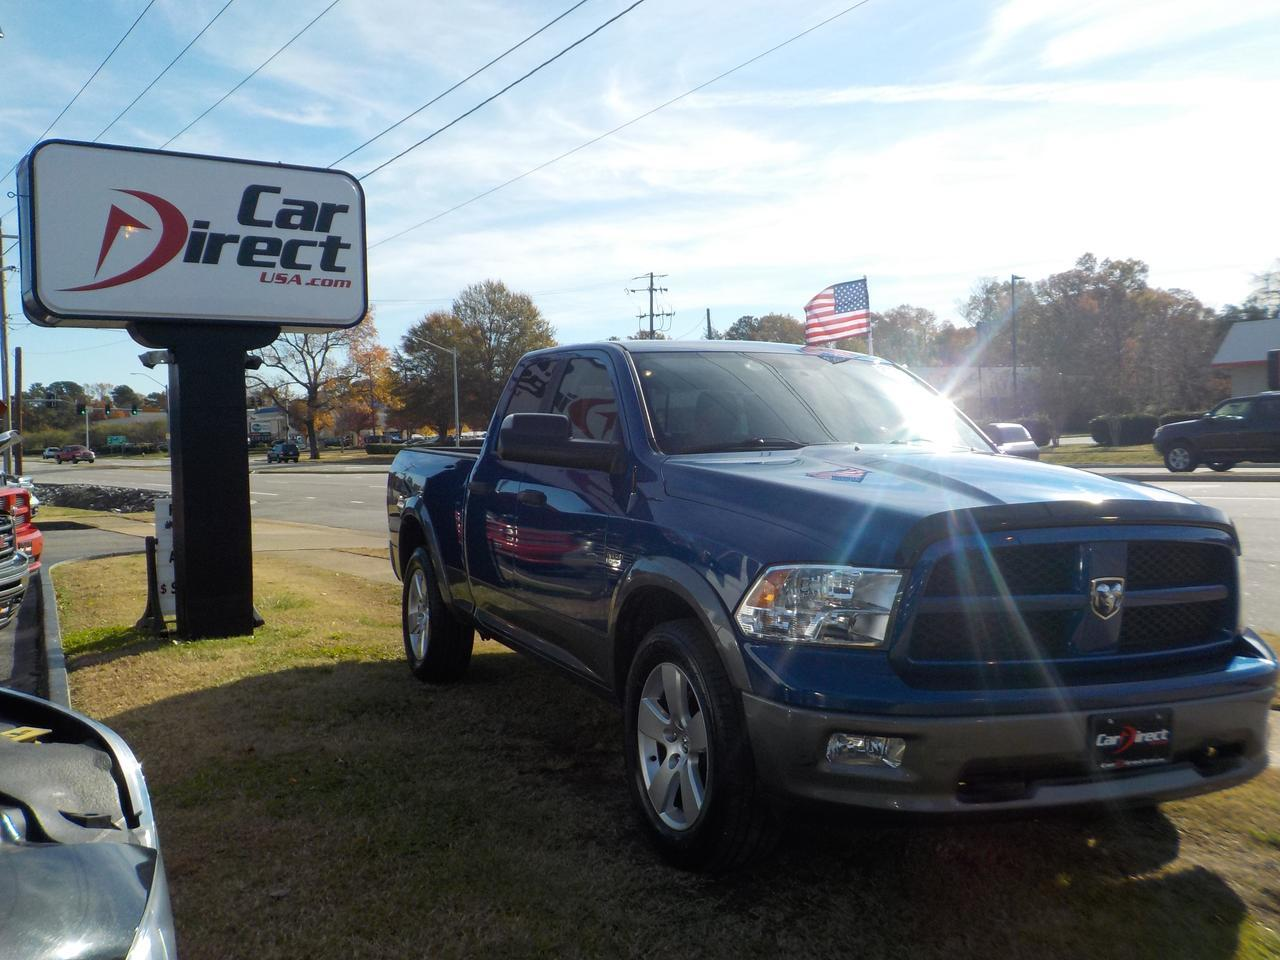 2011 DODGE RAM 1500 SPORT 4X4 QUAD CAB 4 DOOR 5.7L HEMI POWER!  NAVIGATION, SUNROOF, POWER SLIDE REAR WINDOW, LOADED!!!! Virginia Beach VA